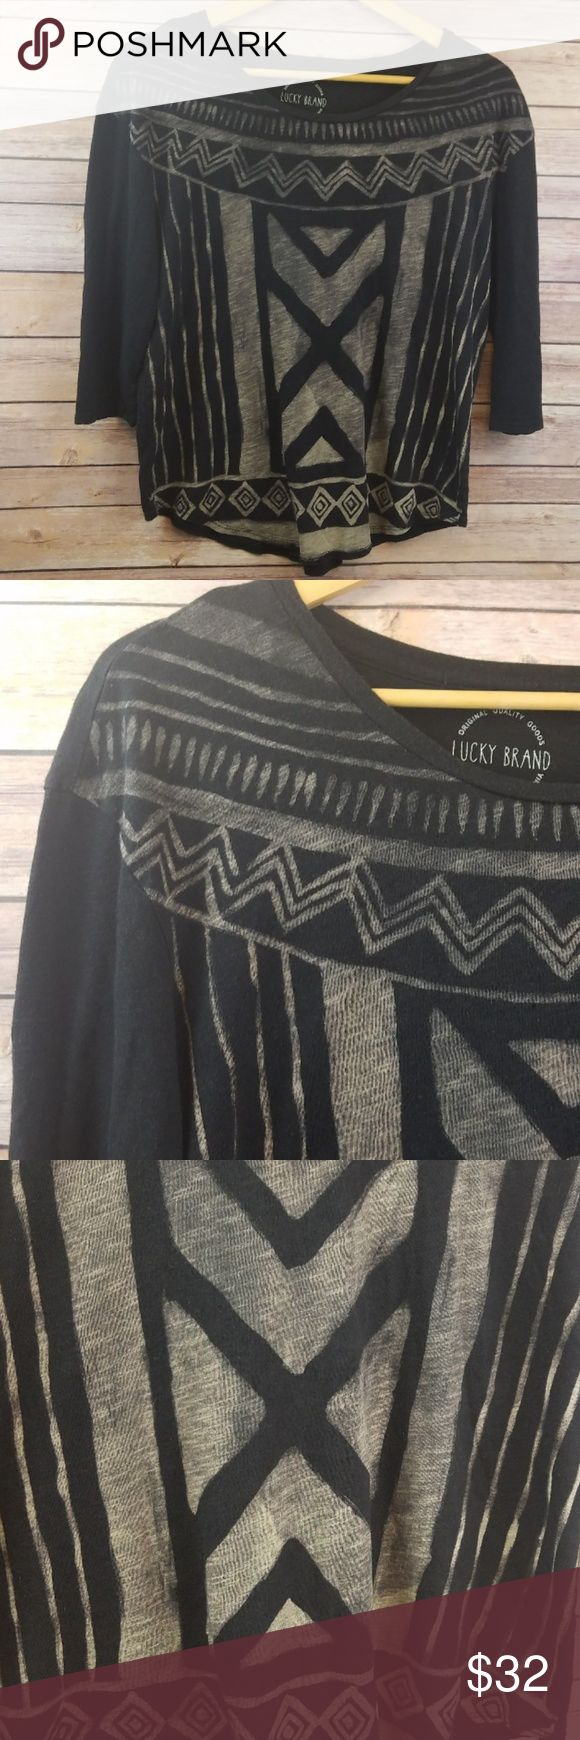 """Lucky Brand Womens Black Chalk Aztec Tribal Medium Lucky Brand Womens Black Chalk Aztec Boho Tribal Pattern 3/4 Sleeve Top Medium  Excellent used condition- no rips, stains, smoke free home. Pit to pit: 20"""" Shoulder to hem: 24"""" Lucky Brand Tops Blouses"""